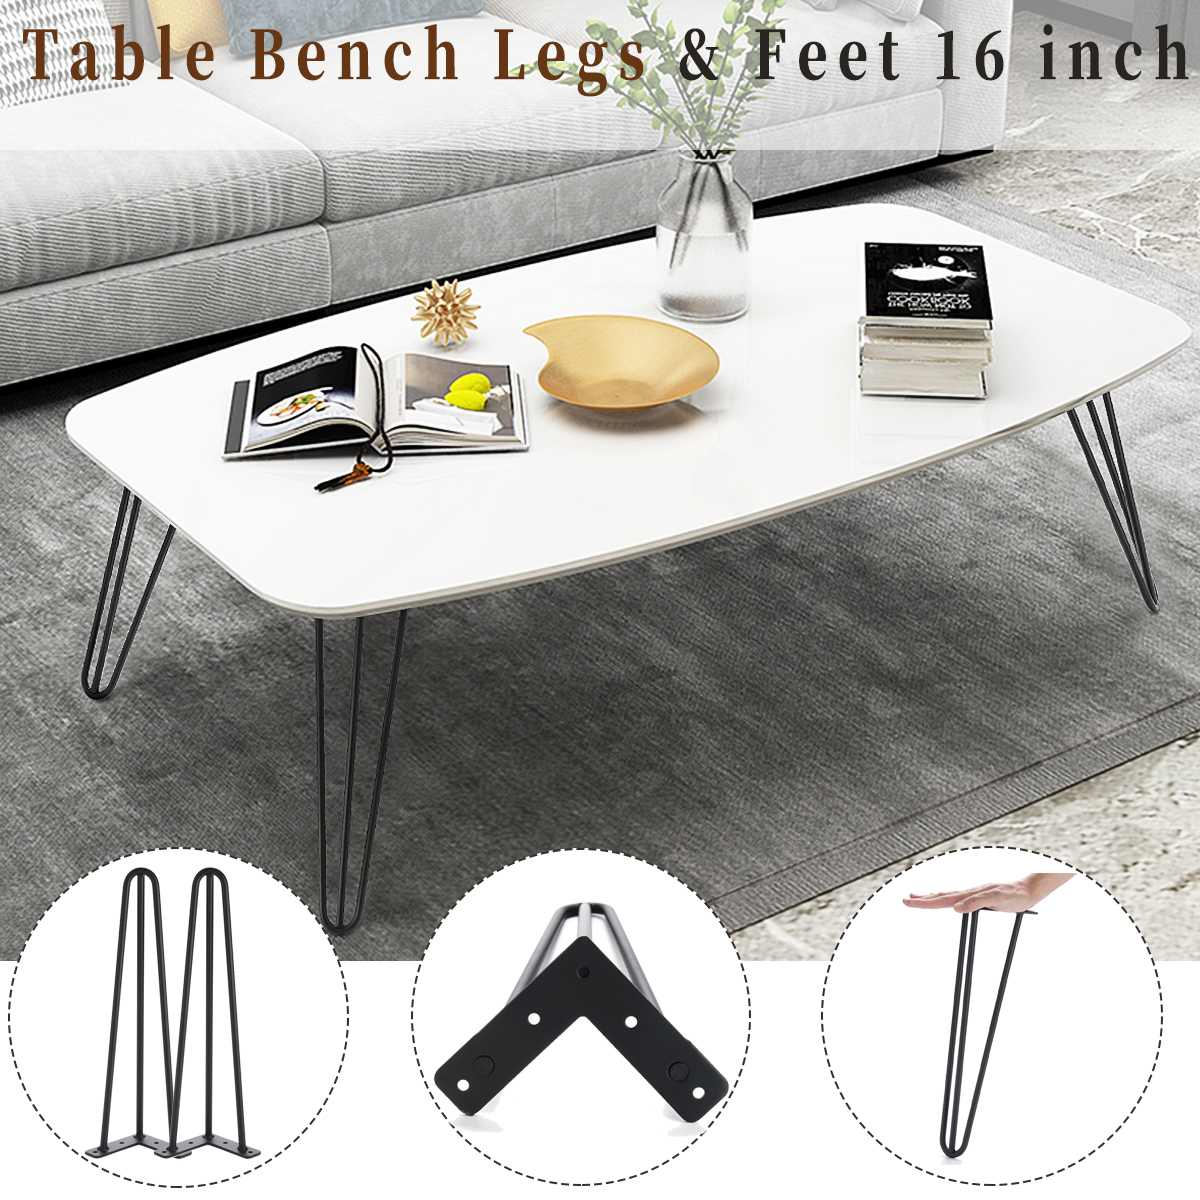 4pcs Metal Table Legs Coffee Tables Bench Iron Hairpin Legs With Floor Mat Table Desk Legs furniture accessories for Home DIY